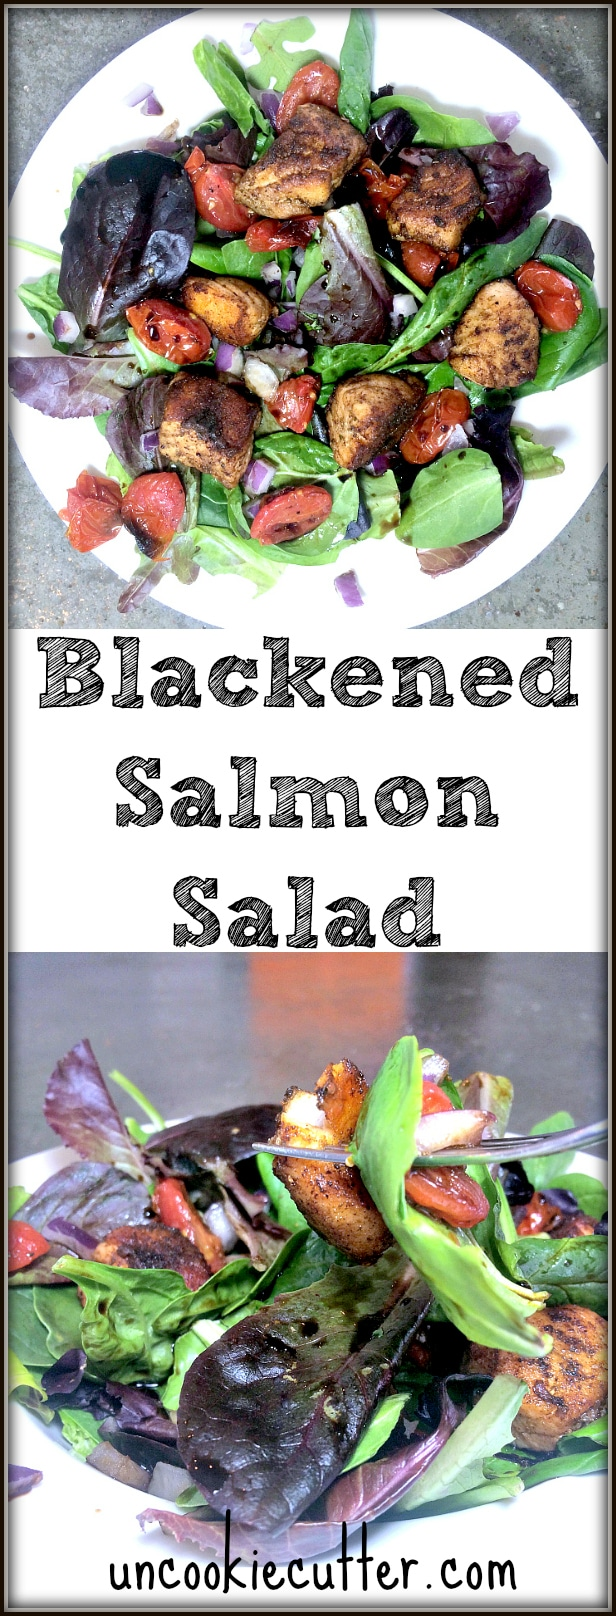 Blackened Salmon BLT Salad - this weeks featured pick by at the You Link It, We Make It Link Party, every Wed - Sat at KnockitOffKim.com and UncookieCutter.com